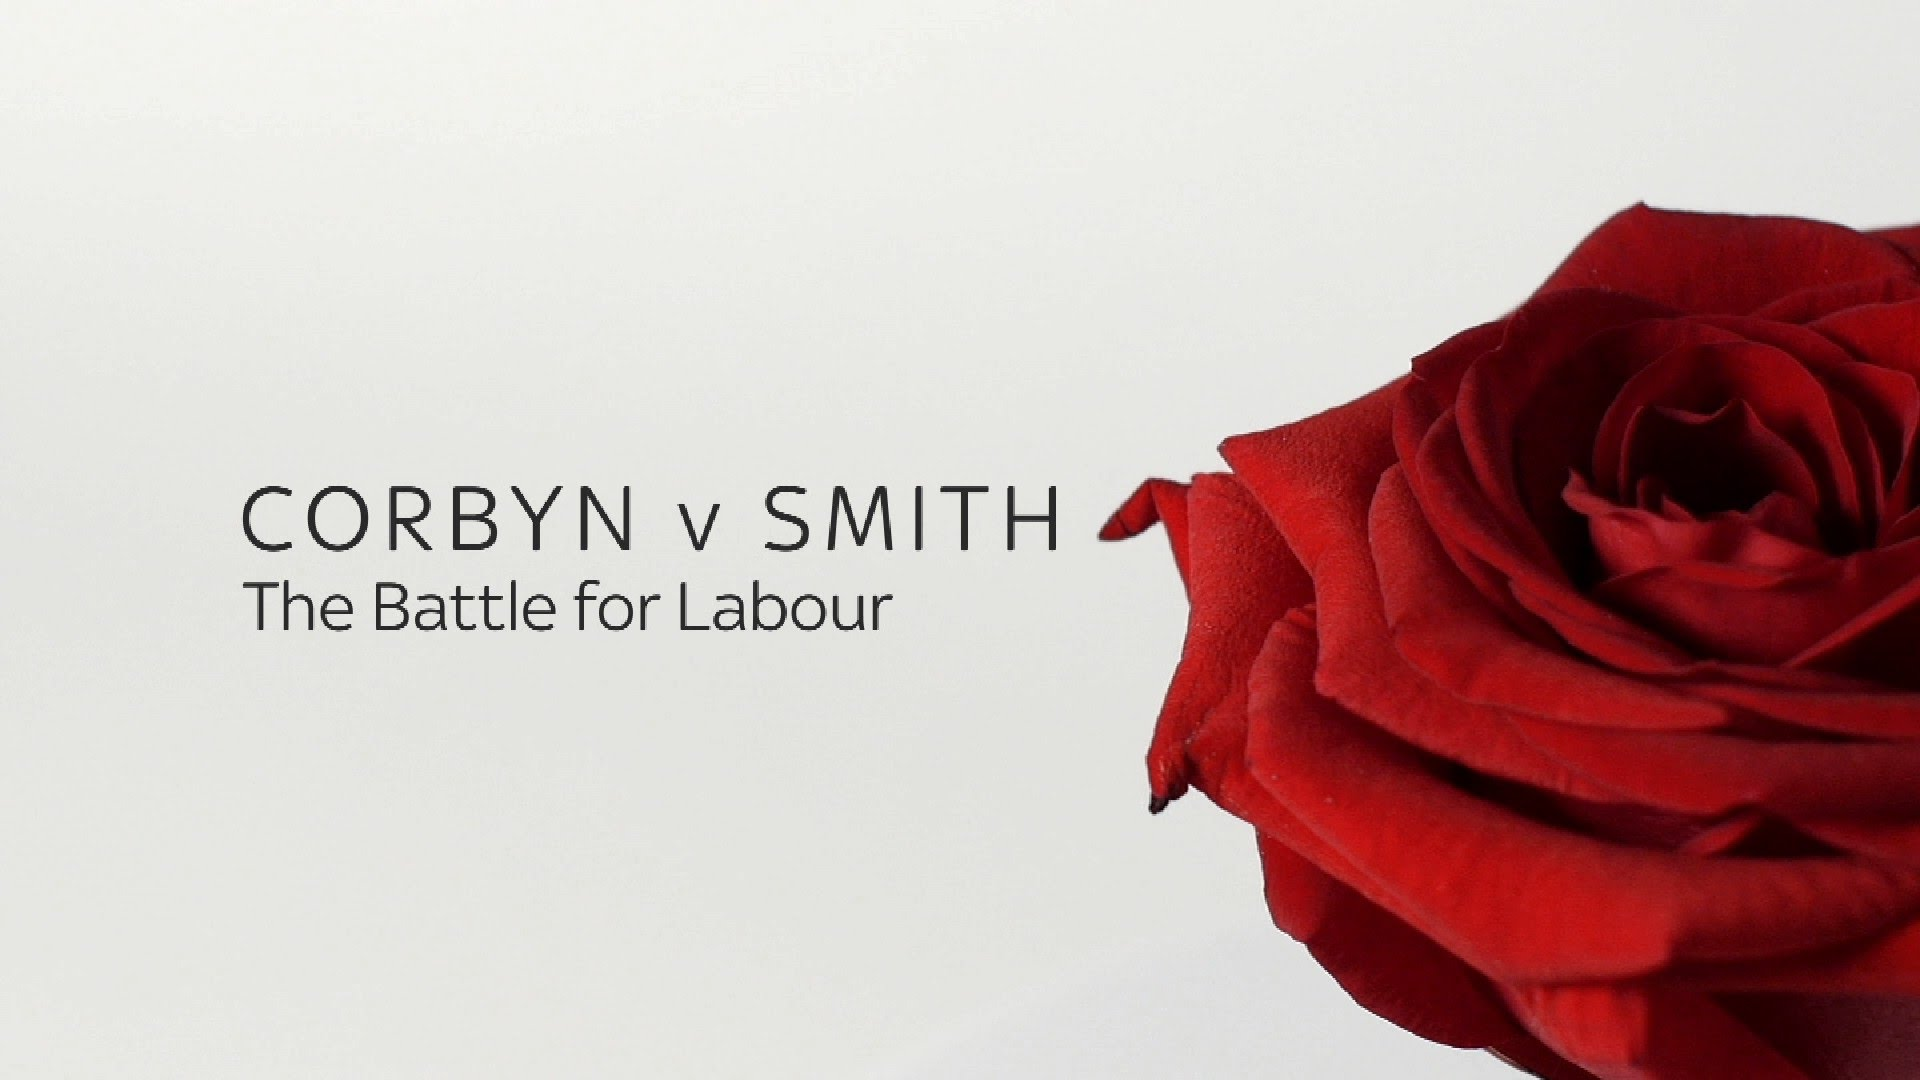 Corbyn v Smith - The Battle For Labour 5